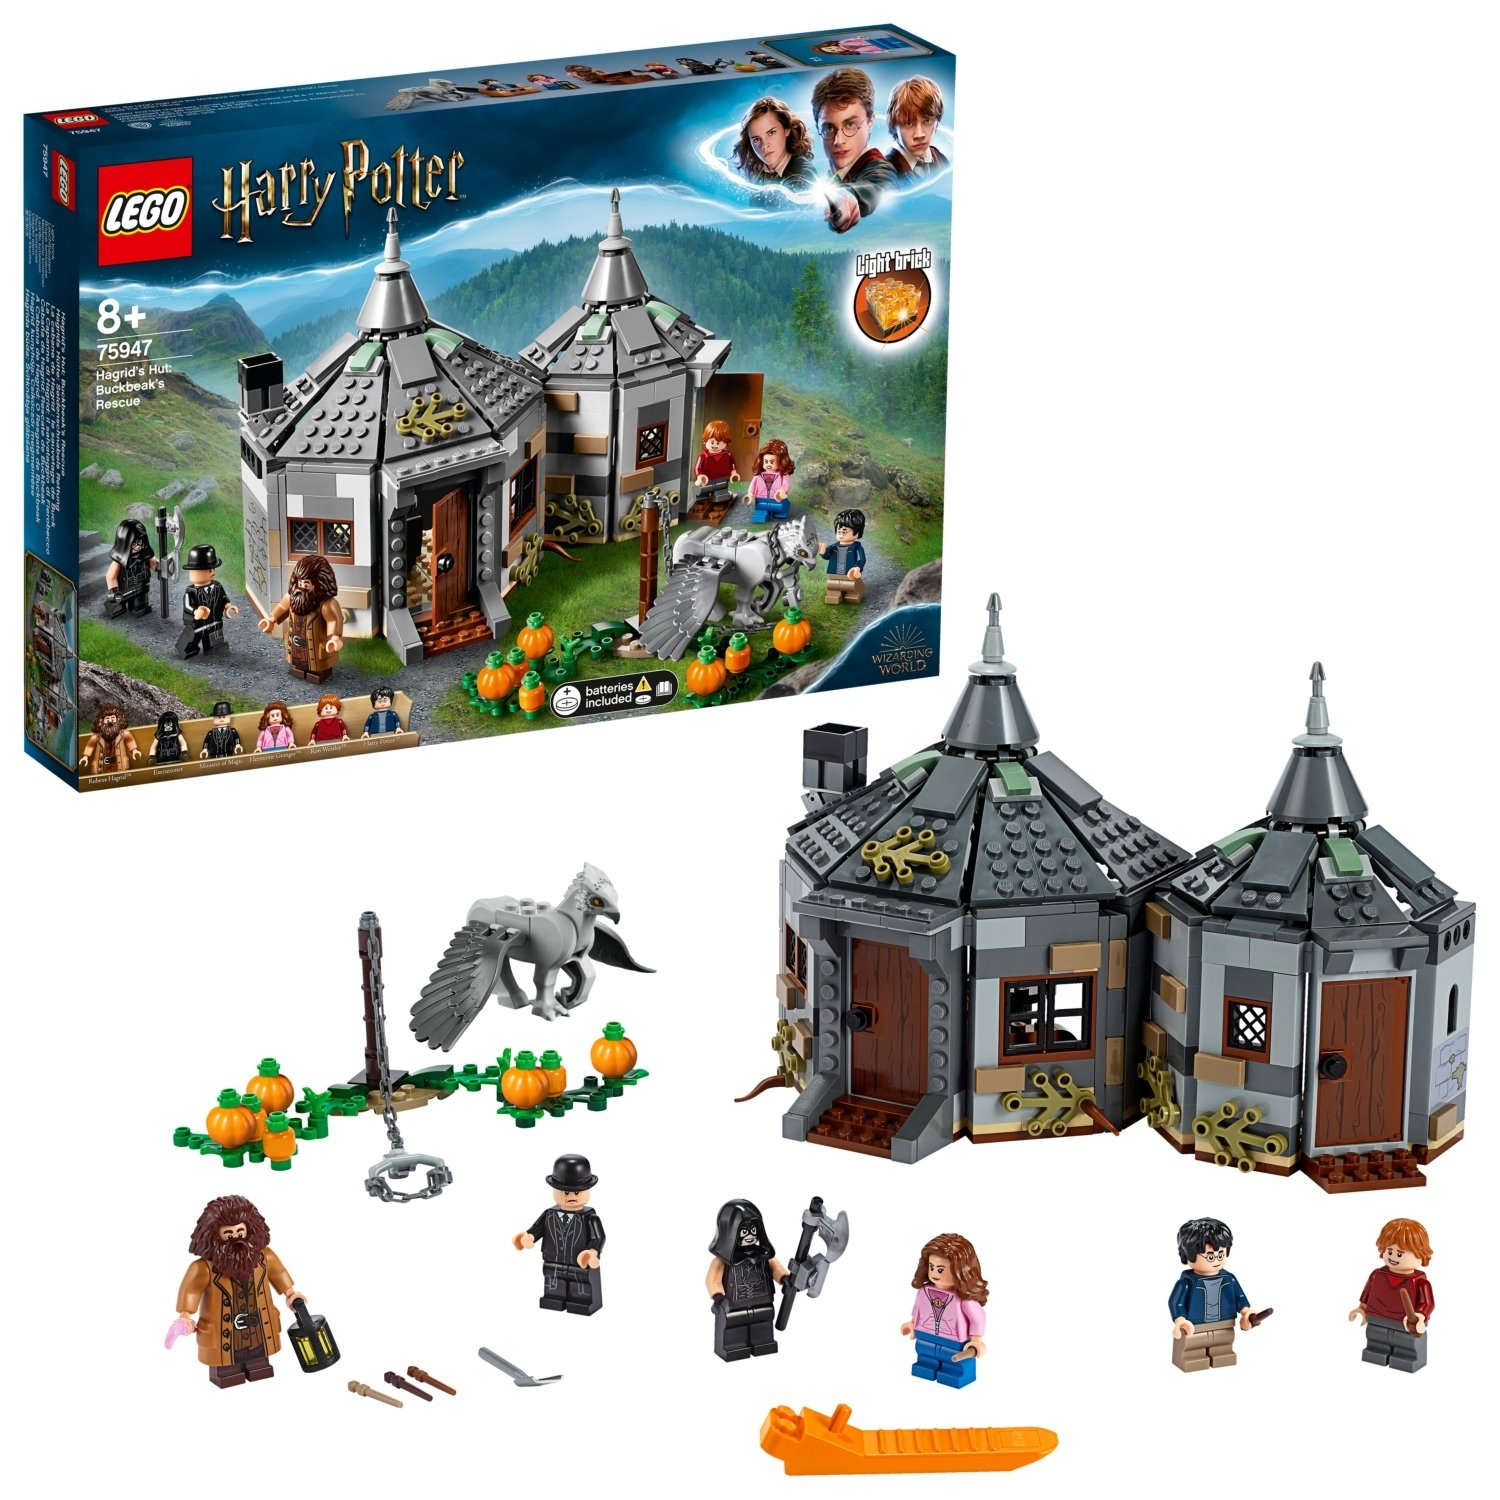 LEGO Harry Potter TM Hagrid's Hut: Buckbeak's Rescue - 75947